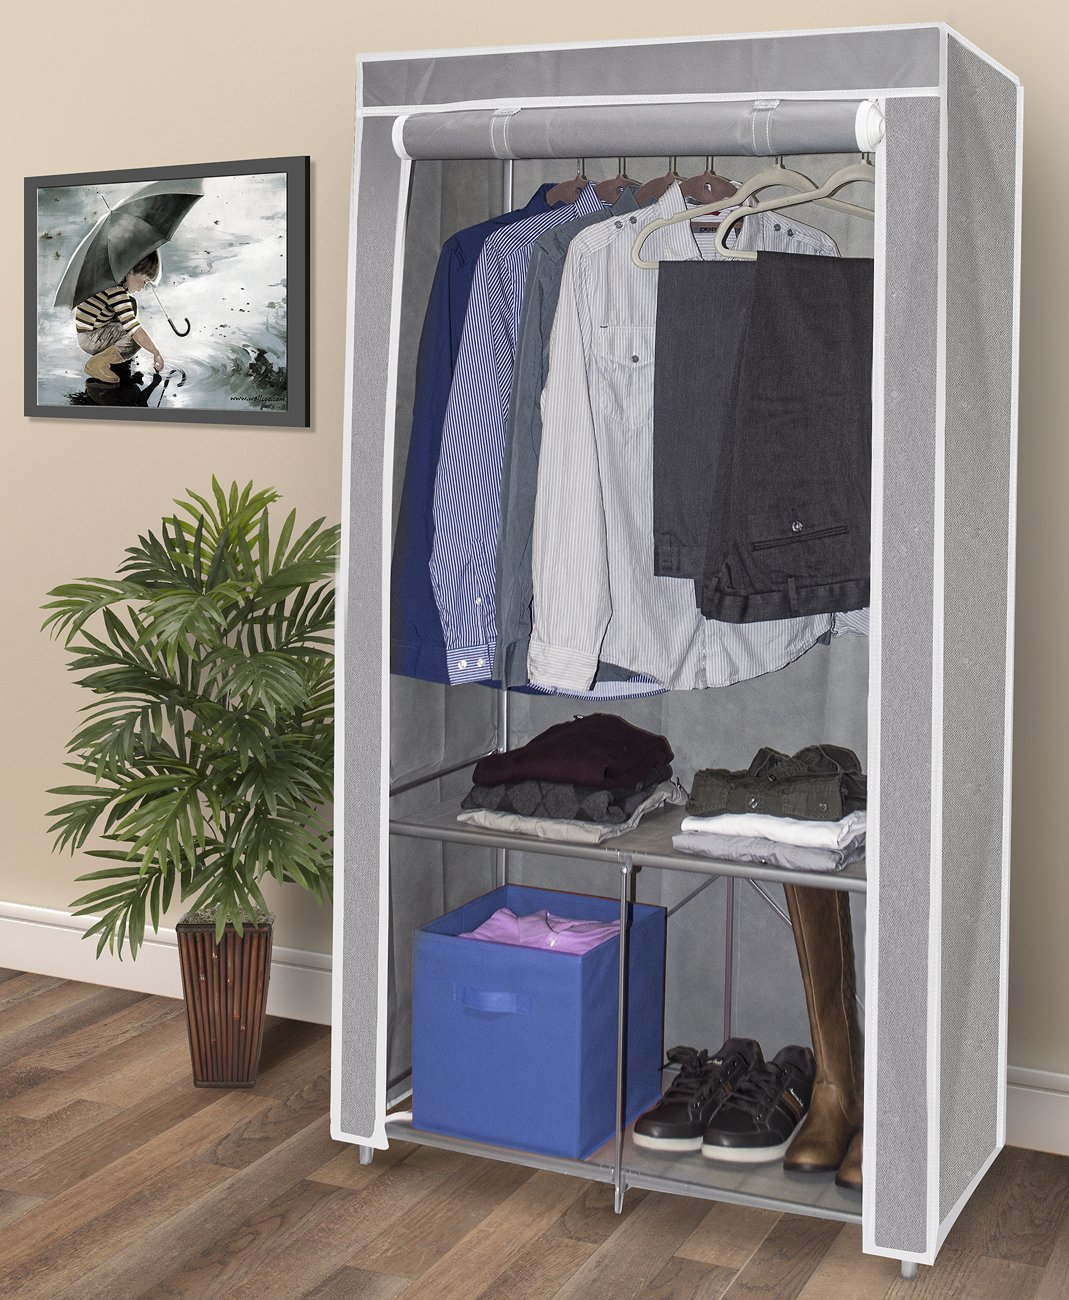 plans for ohperfect design ideas standing formulas closet shortcuts free and wardrobe